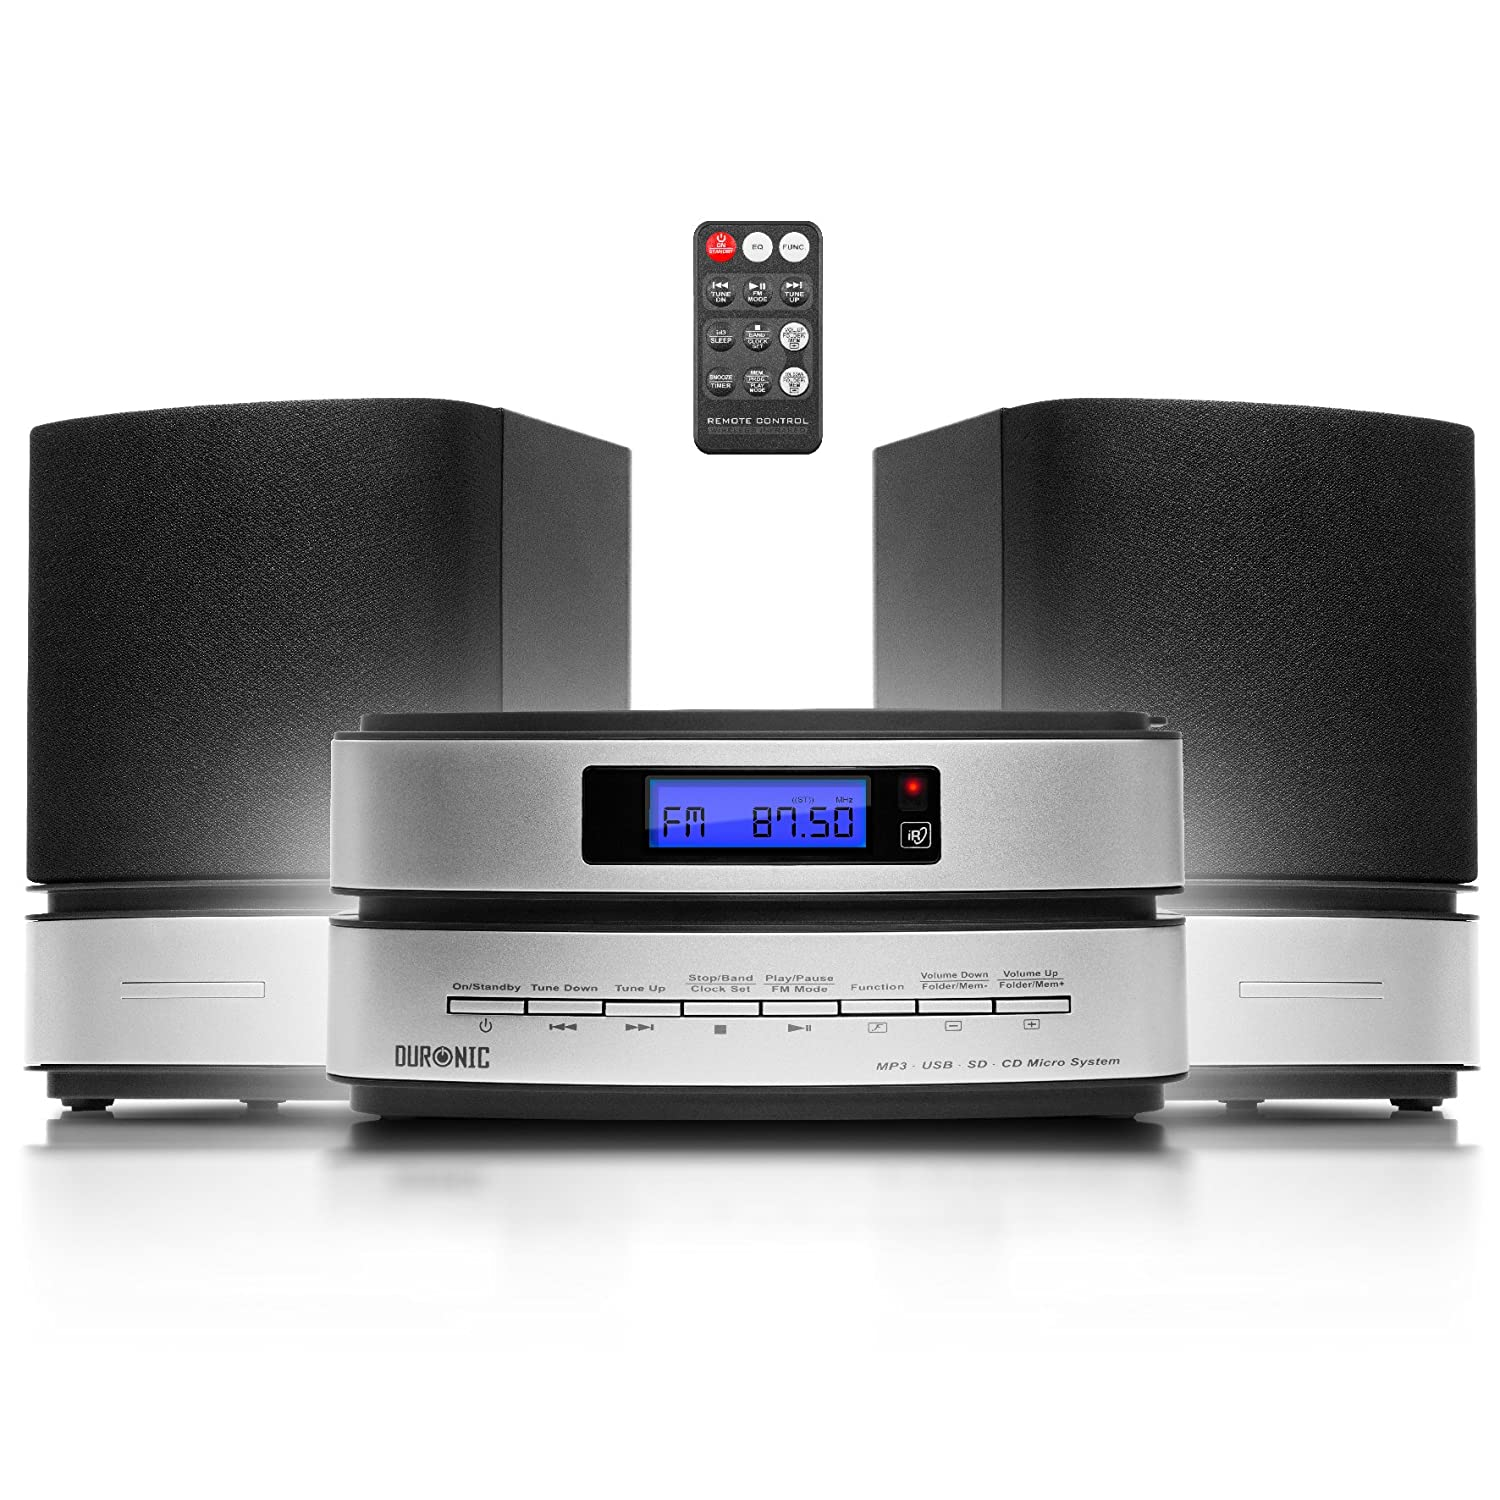 Duronic Micro Hi-Fi RCD144 CD Audio System Player |Speakers|MP3 CD|FM Radio| USB/SD Card Reader|Remote Control|AUX-In to Connect to Smartphones